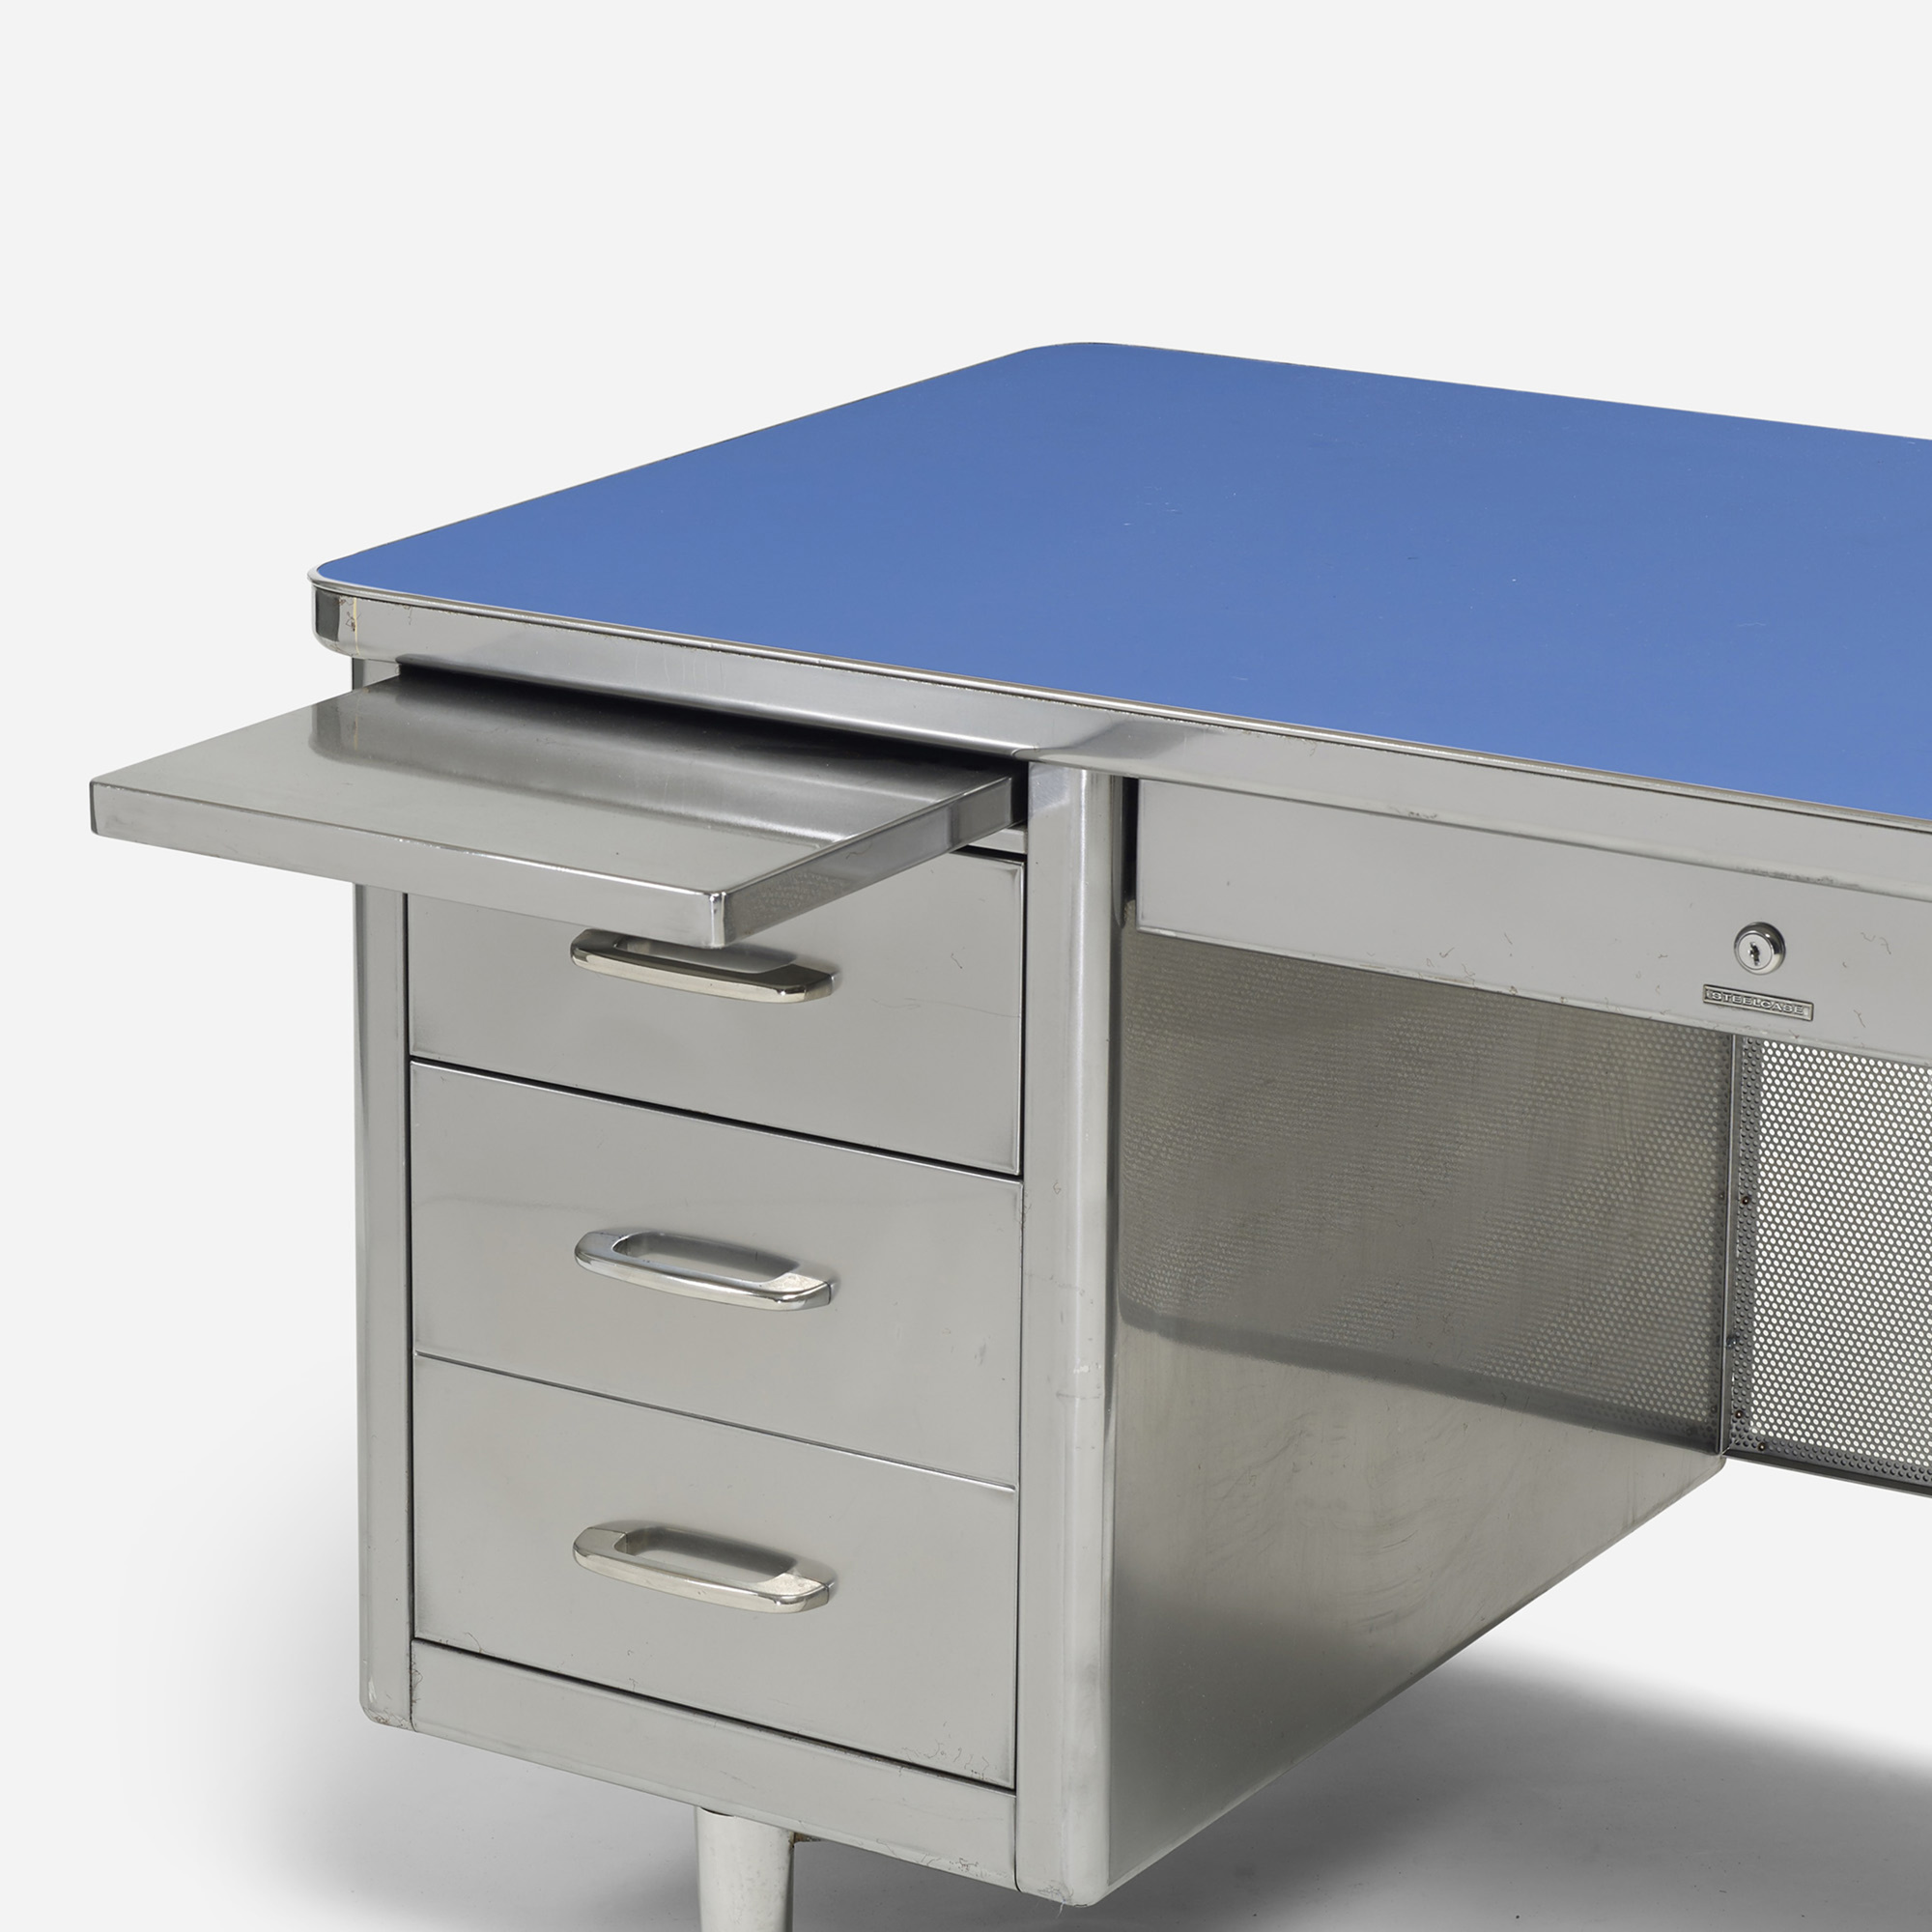 741: Steelcase / desk (4 of 4)